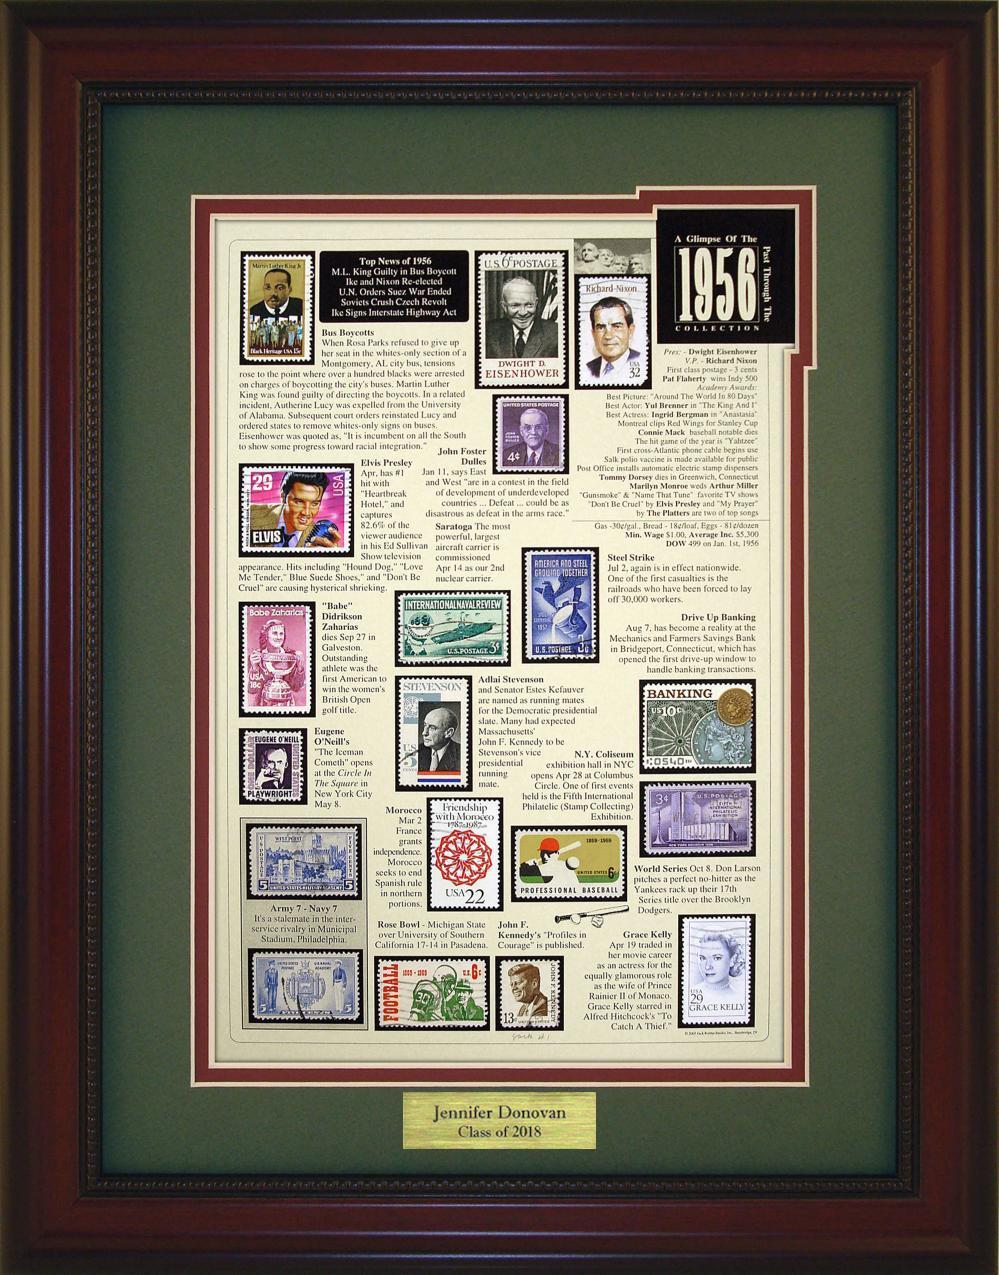 Year 1956 - Personalized Unique Framed Gift